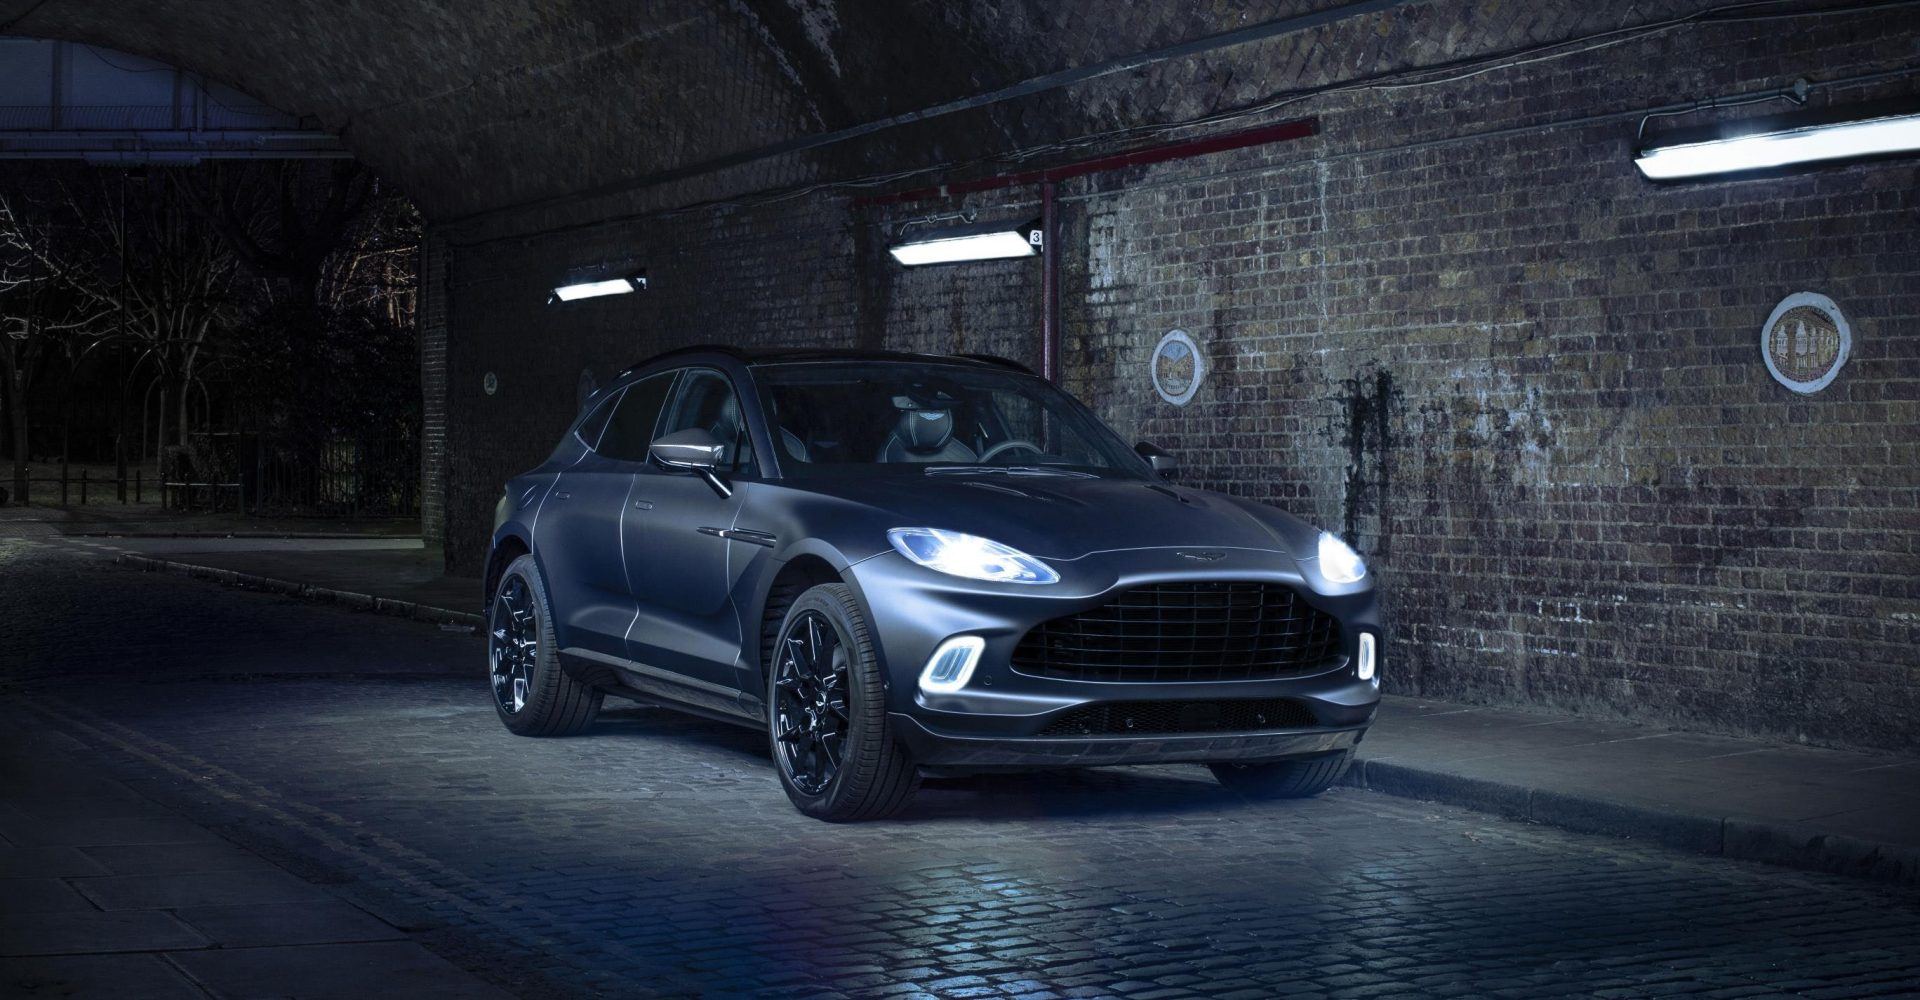 Aston Martin showcases bespoke Q services for DBX SUV